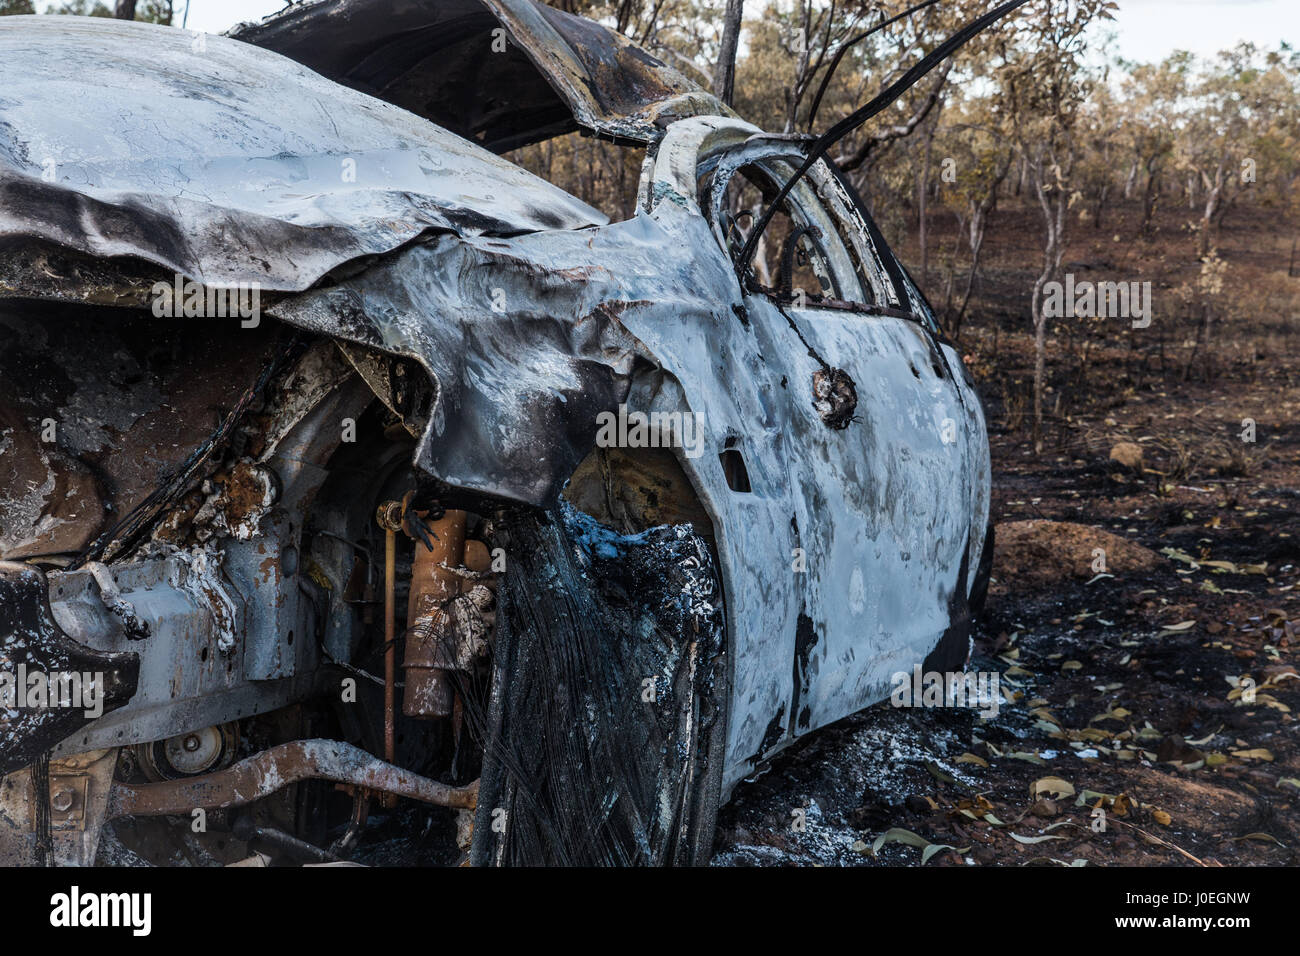 Burnt out car in Katherine National Park - Stock Image